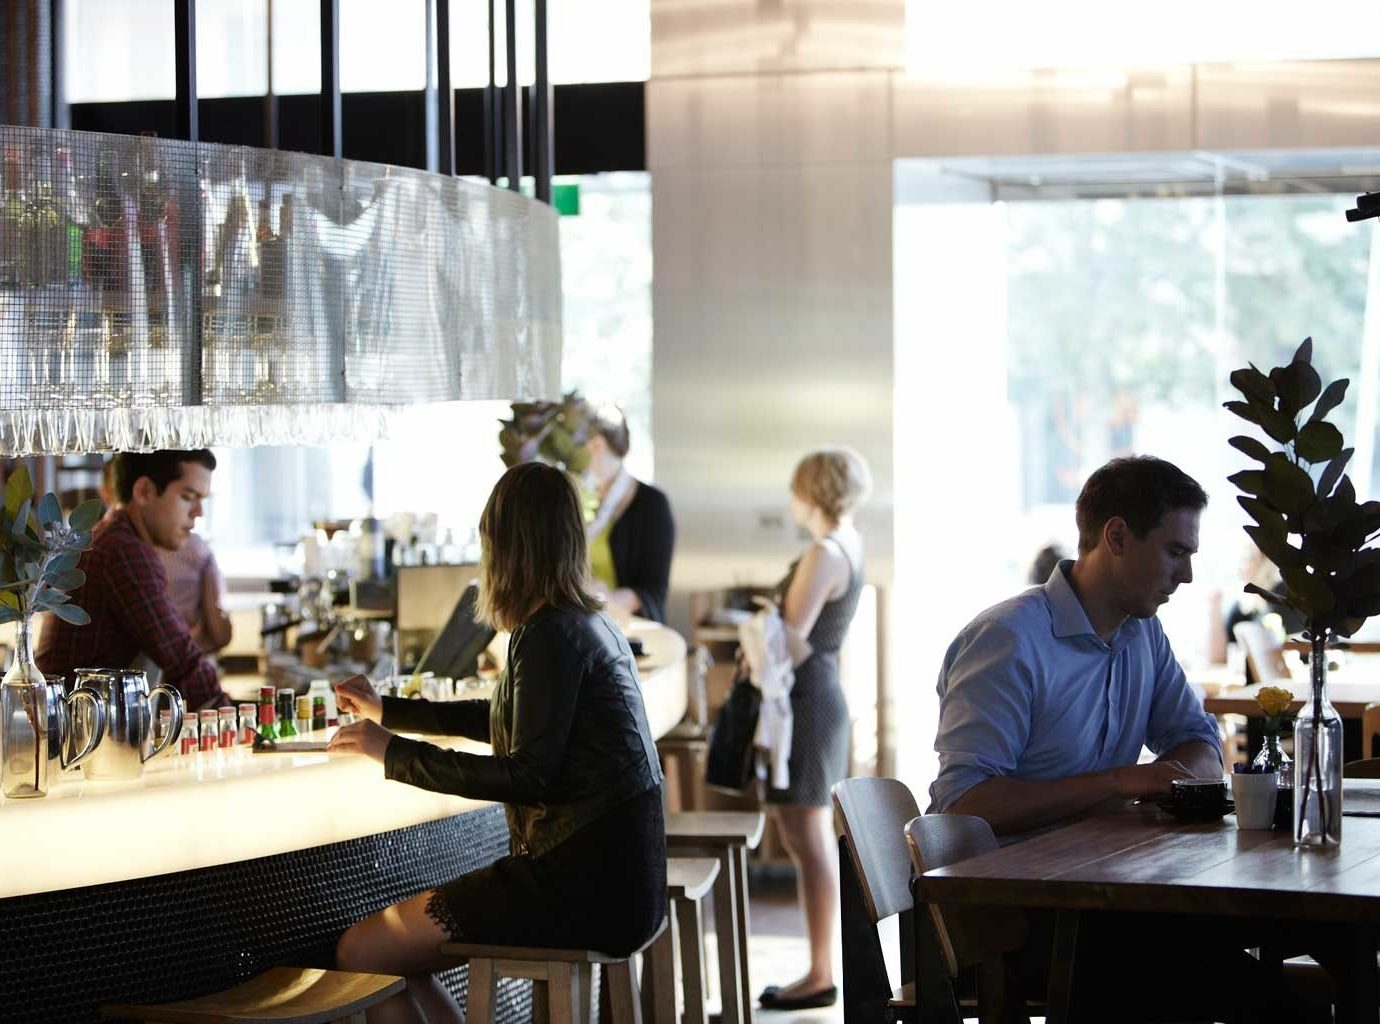 Australia Classic Dining Drink Eat Hotels Melbourne indoor table window person restaurant meal Bar people lunch dining table